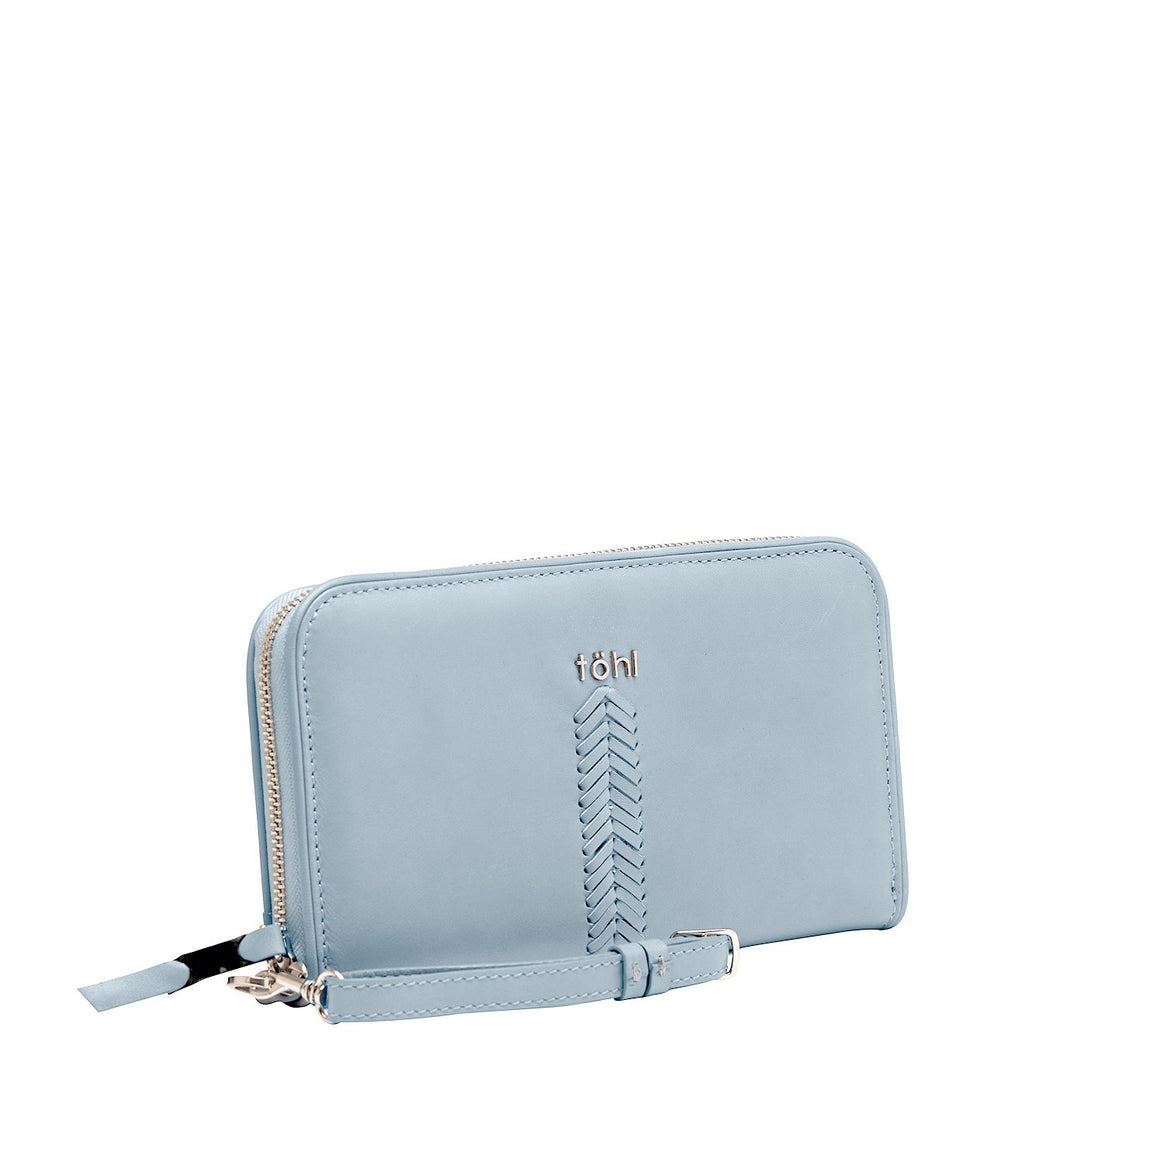 WT 0007 - TOHL LUCE WOMEN'S ZIP WALLET - WATER